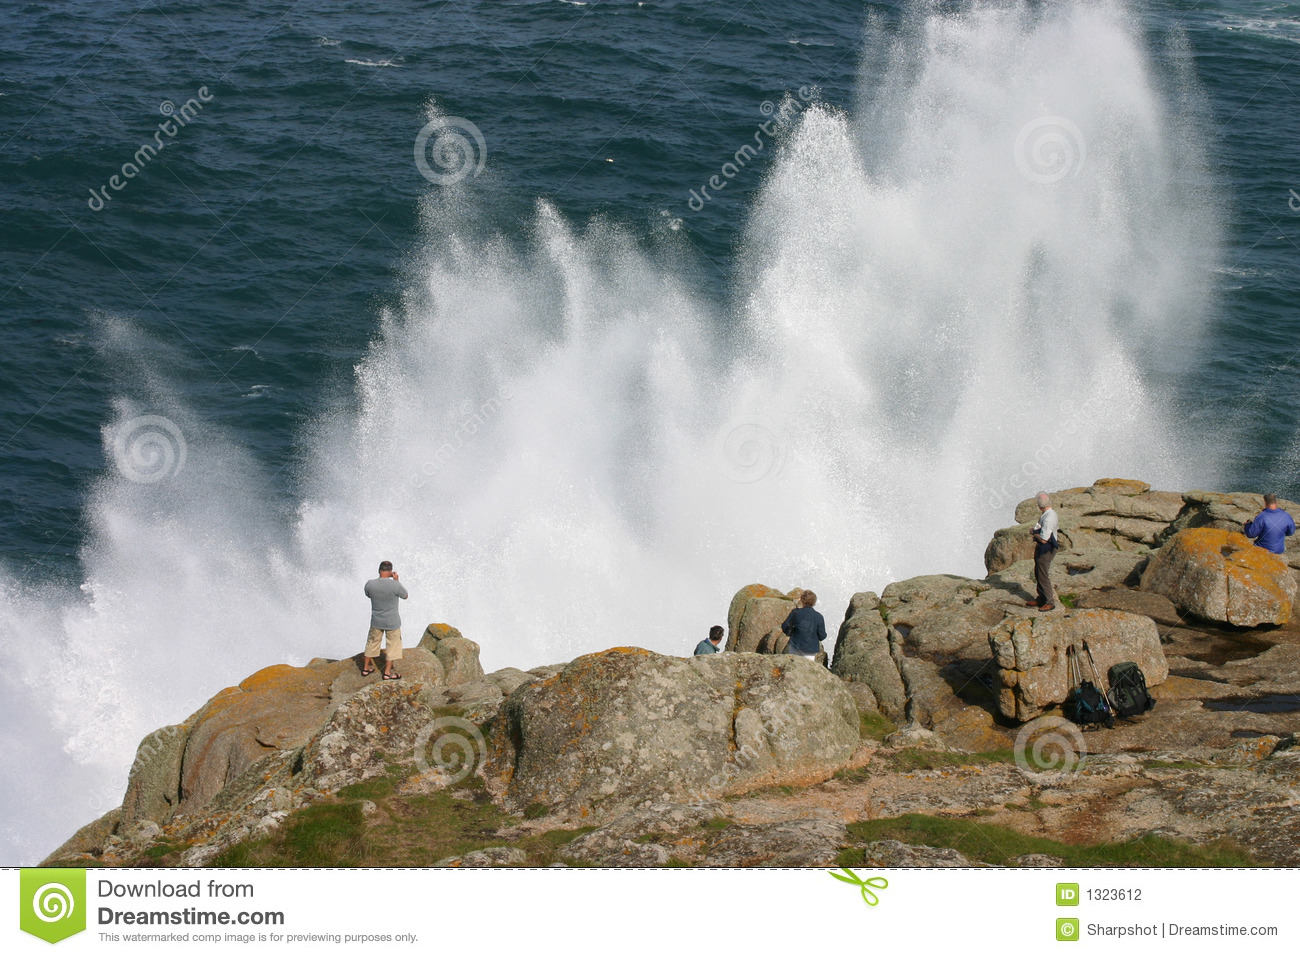 Watching a spectacular sea spray